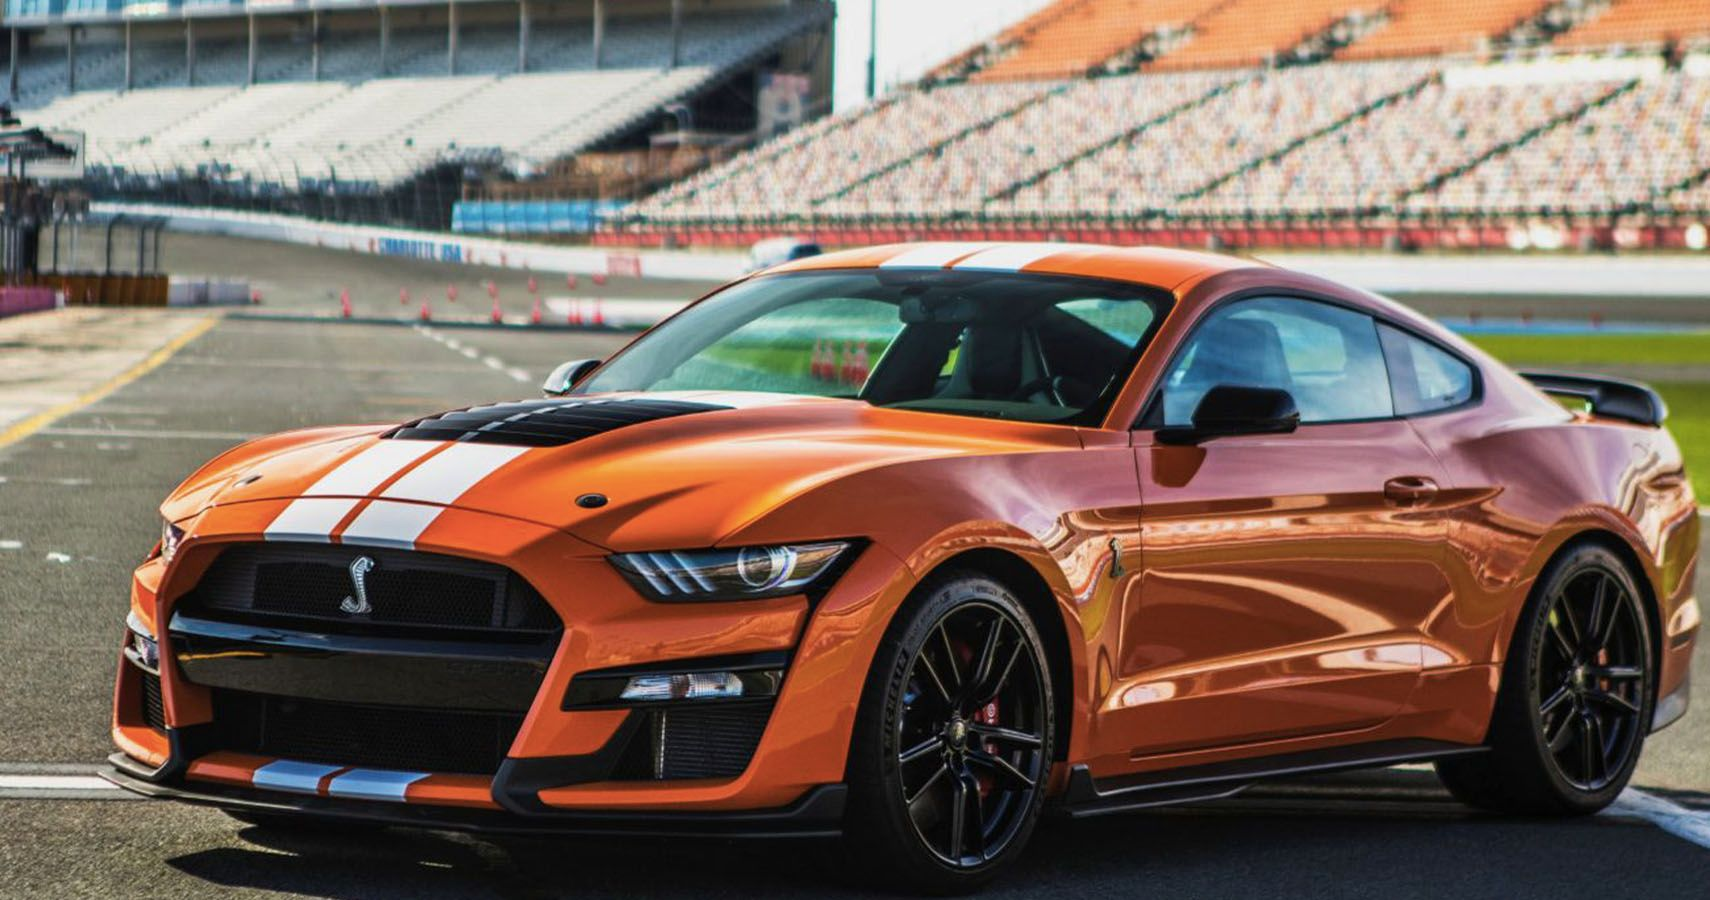 Leaked Ford Docs Reveal Shelby GT500 Carbon Fiber Package, Colors, Mach 1 Details